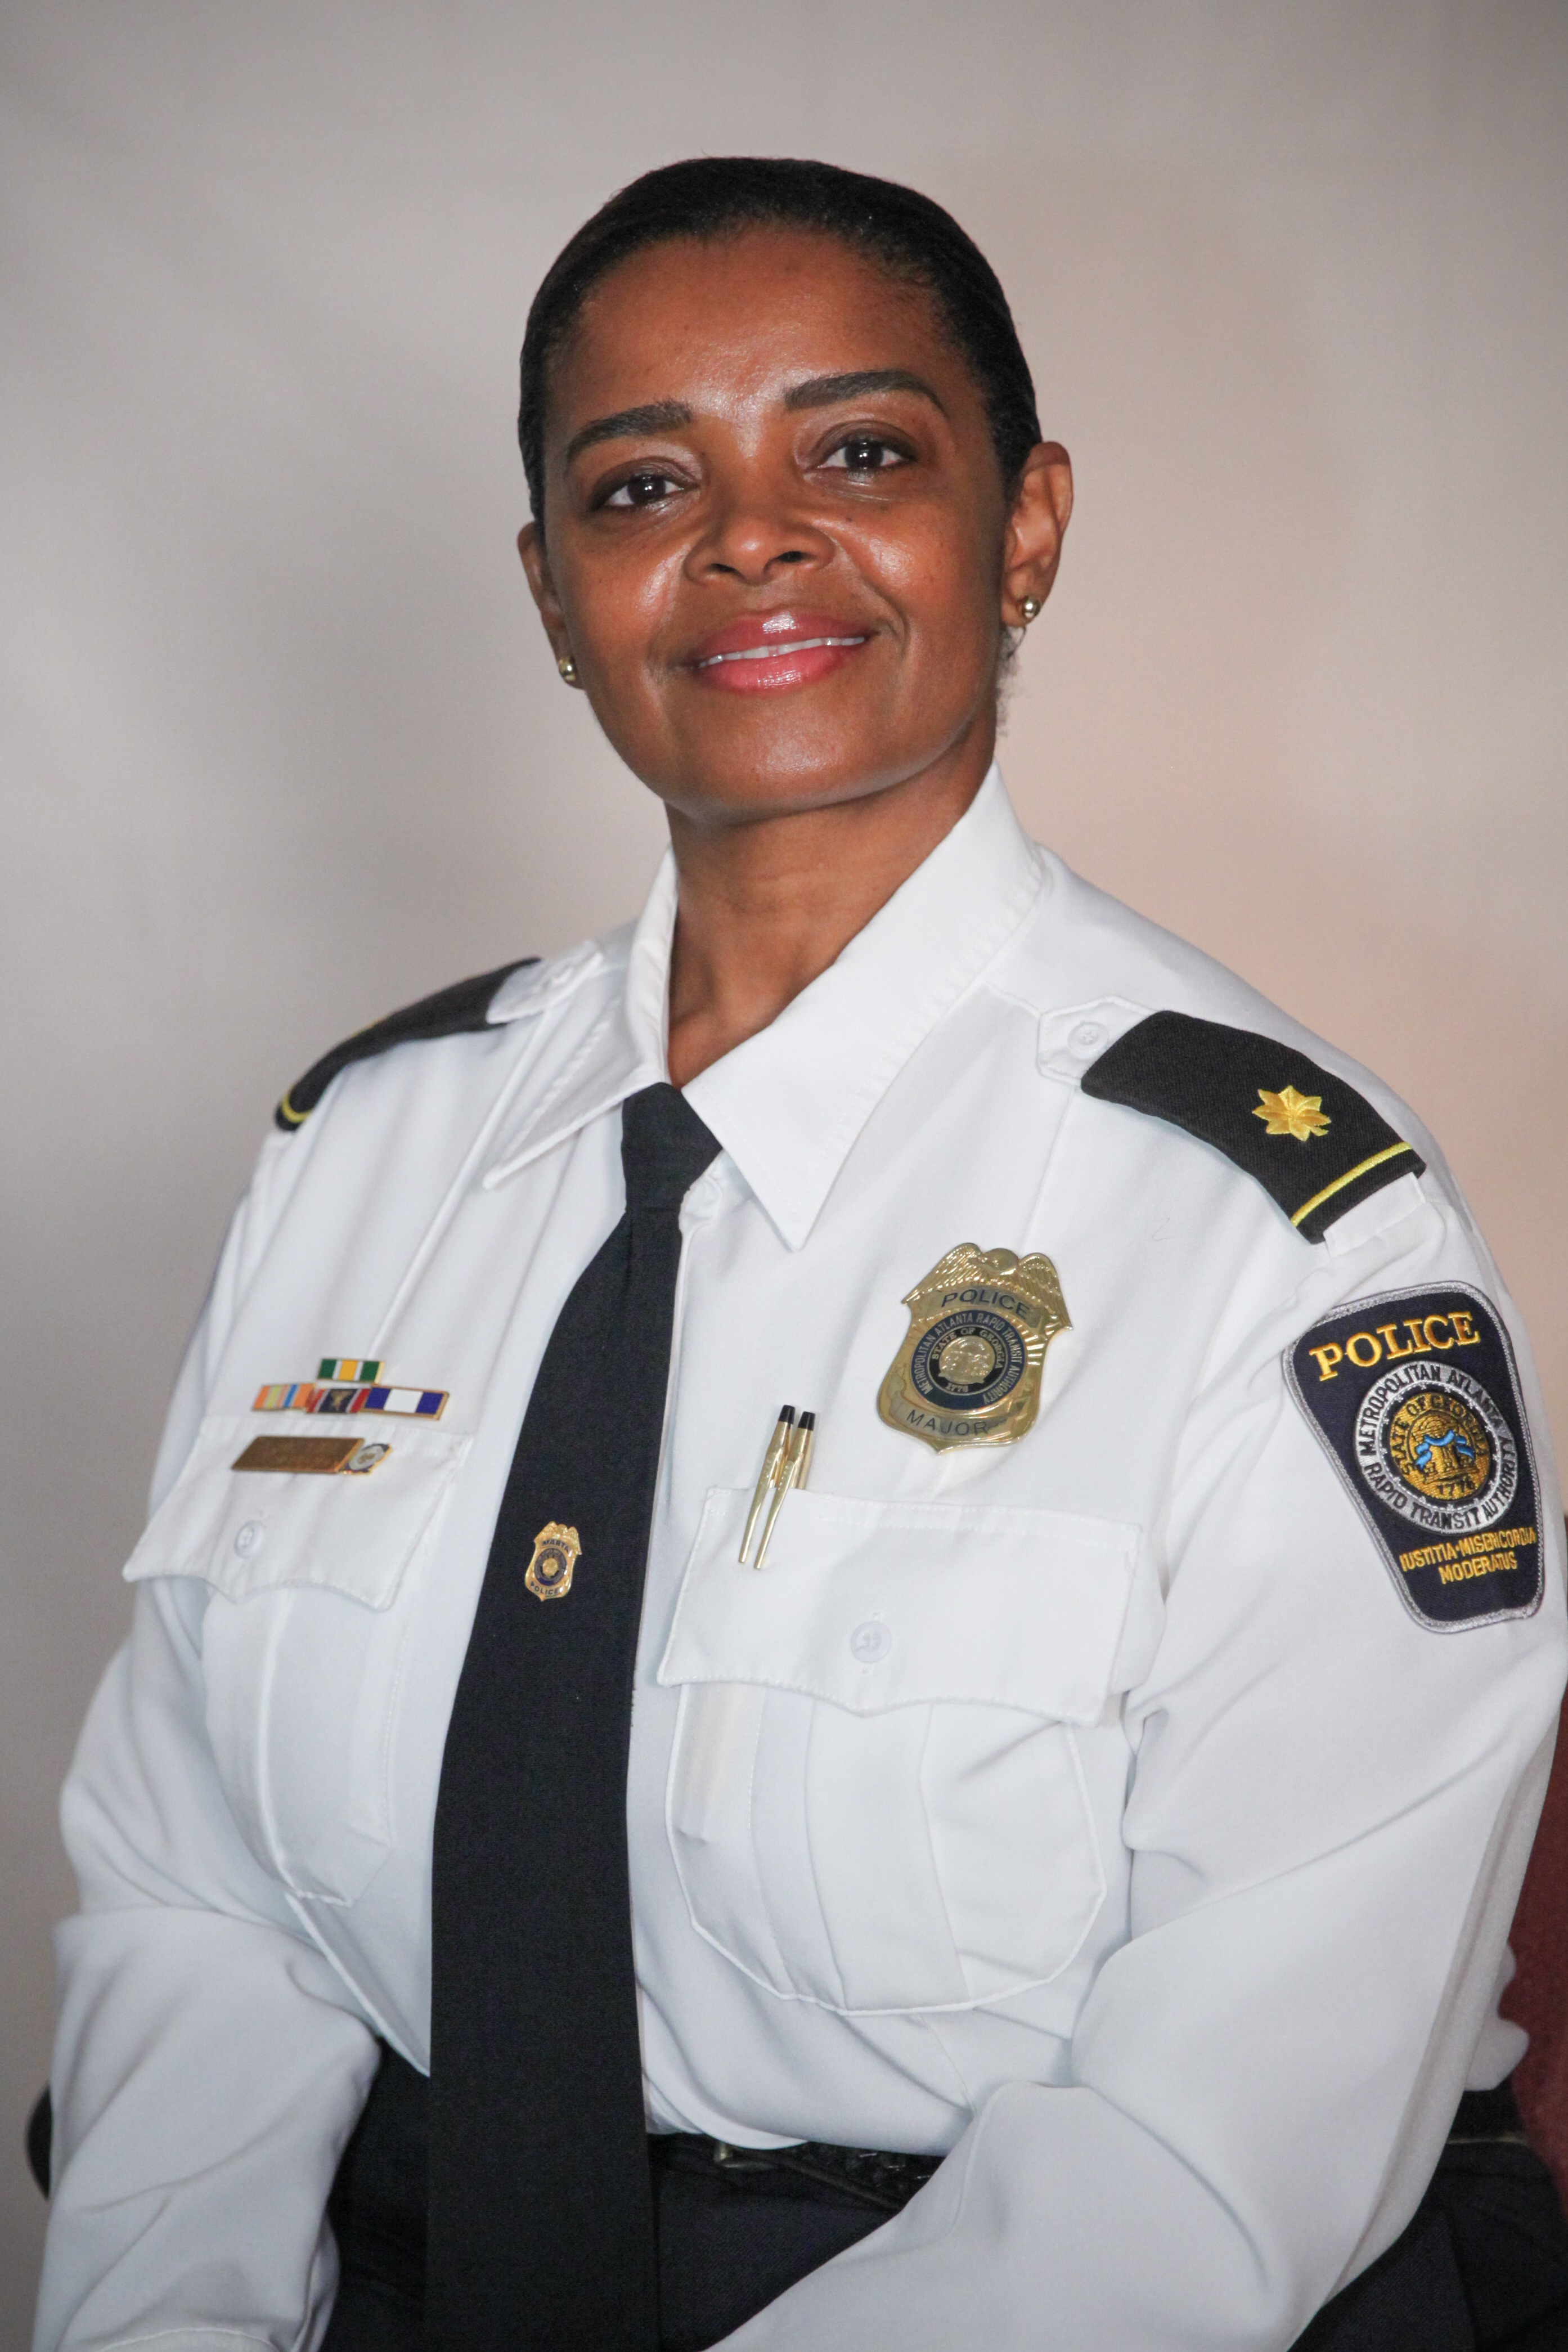 MPD Major Pearlie McKinzie